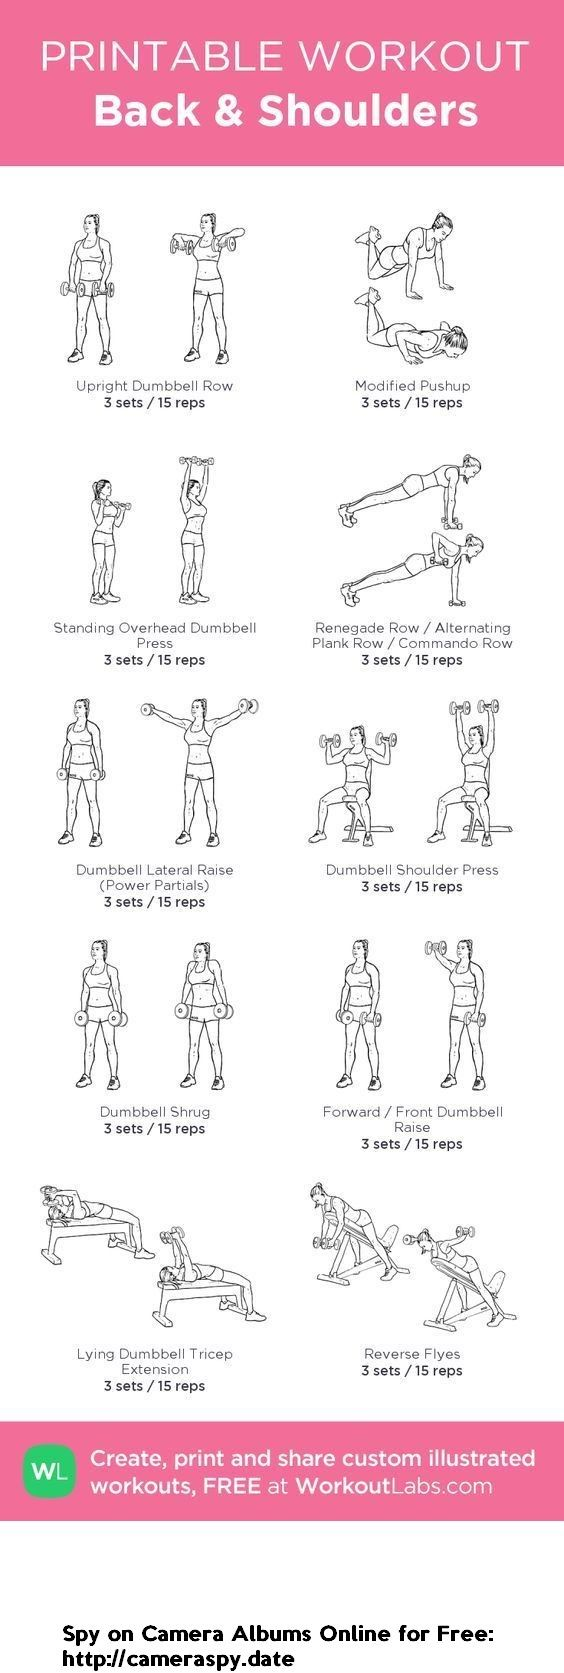 The Best Step By Step Exercises For Fitness, Weight Loss, And Healthy Living. In...